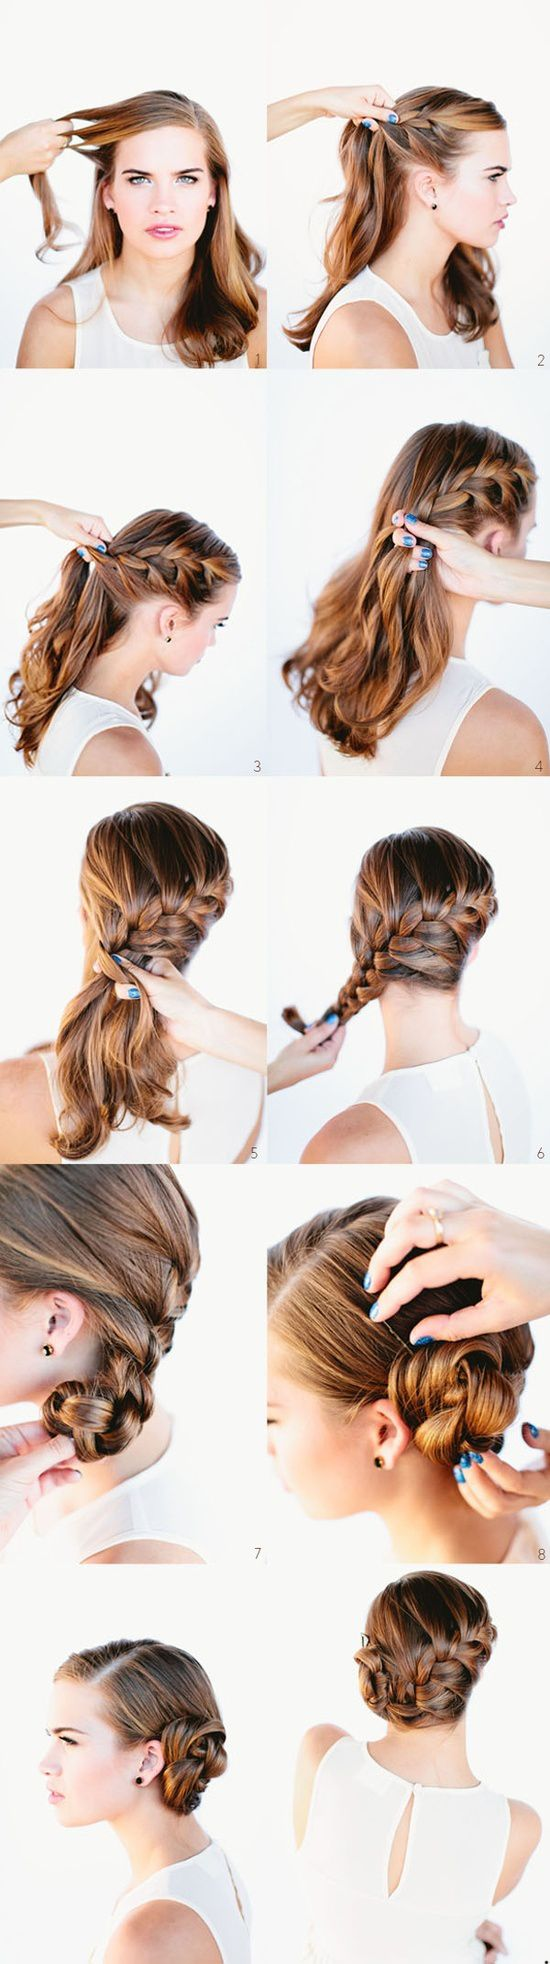 French braid into bun step by step